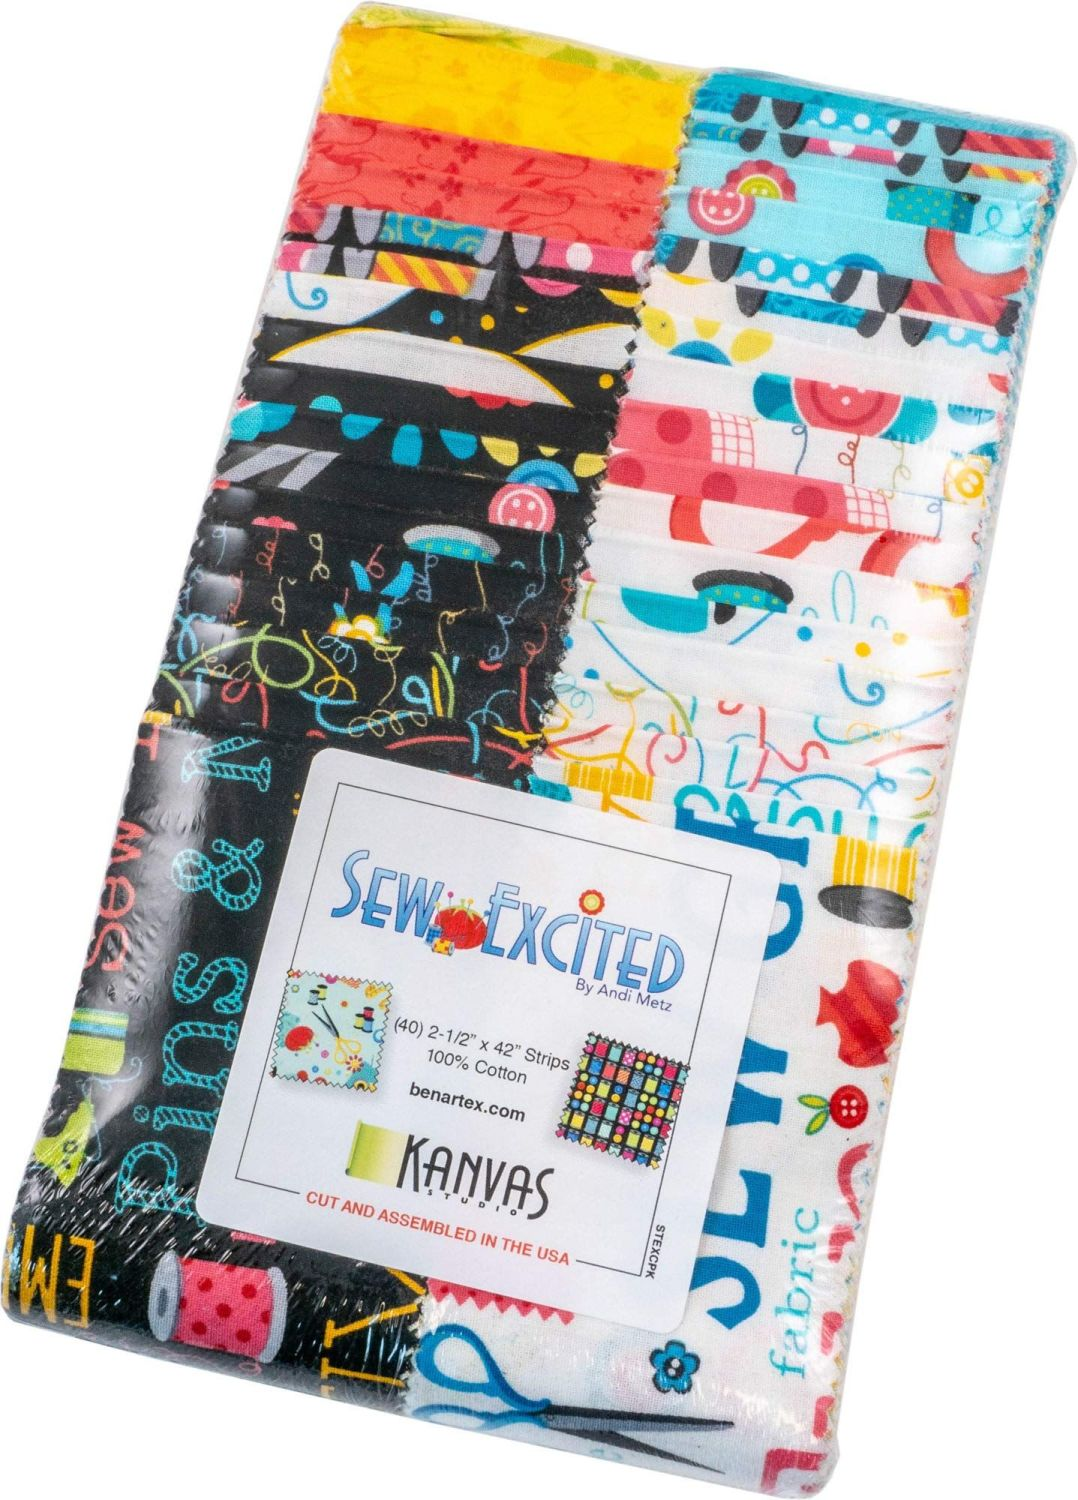 Sew Excited - Benartex (Sewing related images)